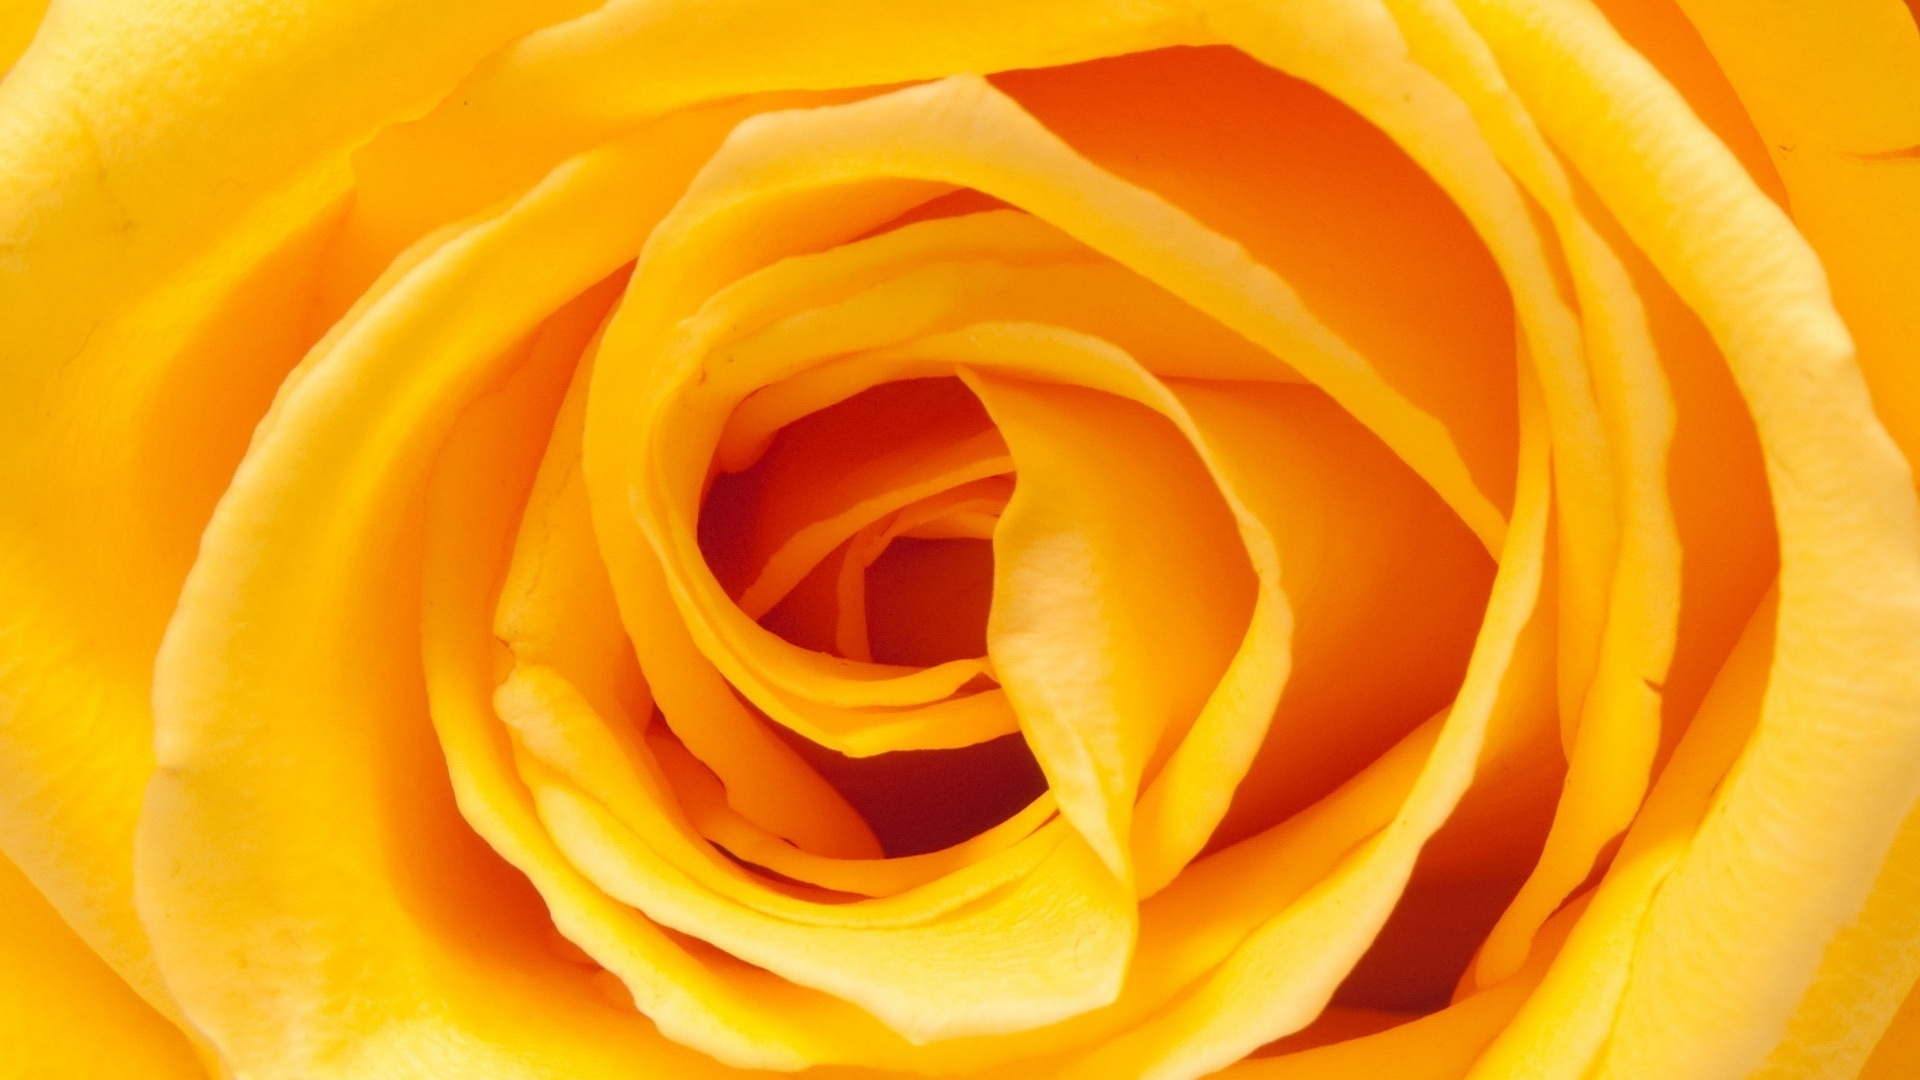 wallpaper of yellow roses - photo #39